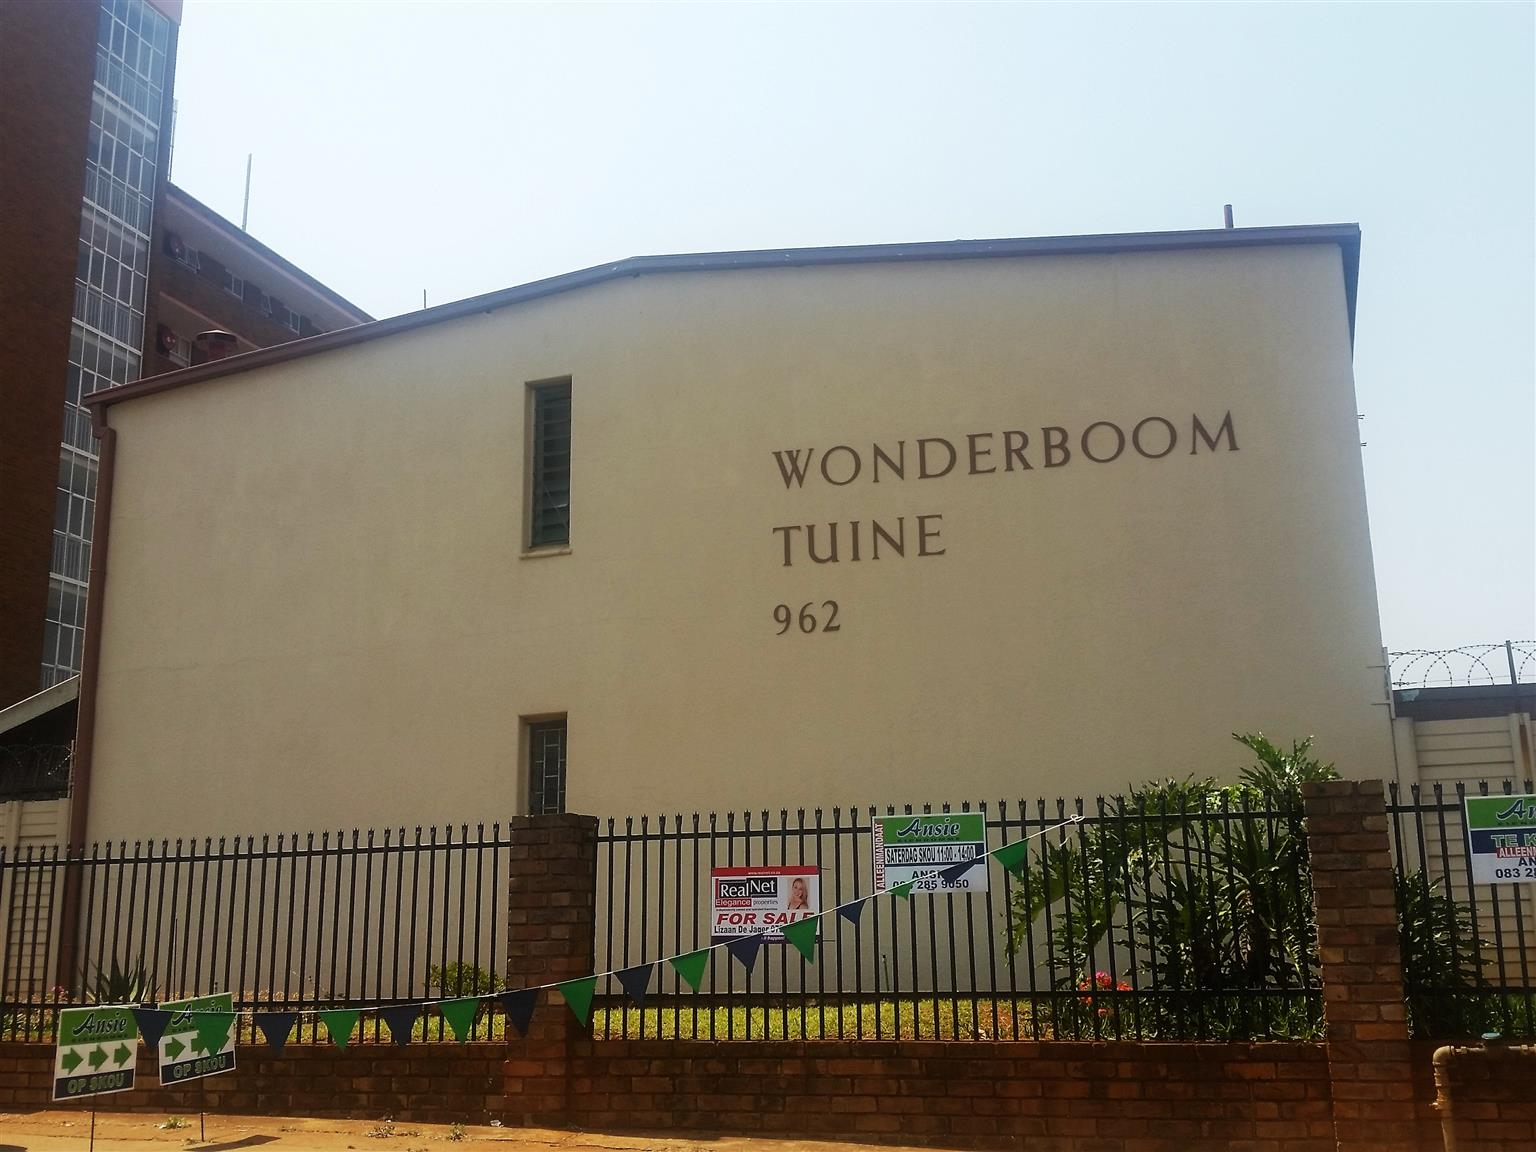 WONDERBOOM SOUTH - 2 BEDROOM DUPLEX